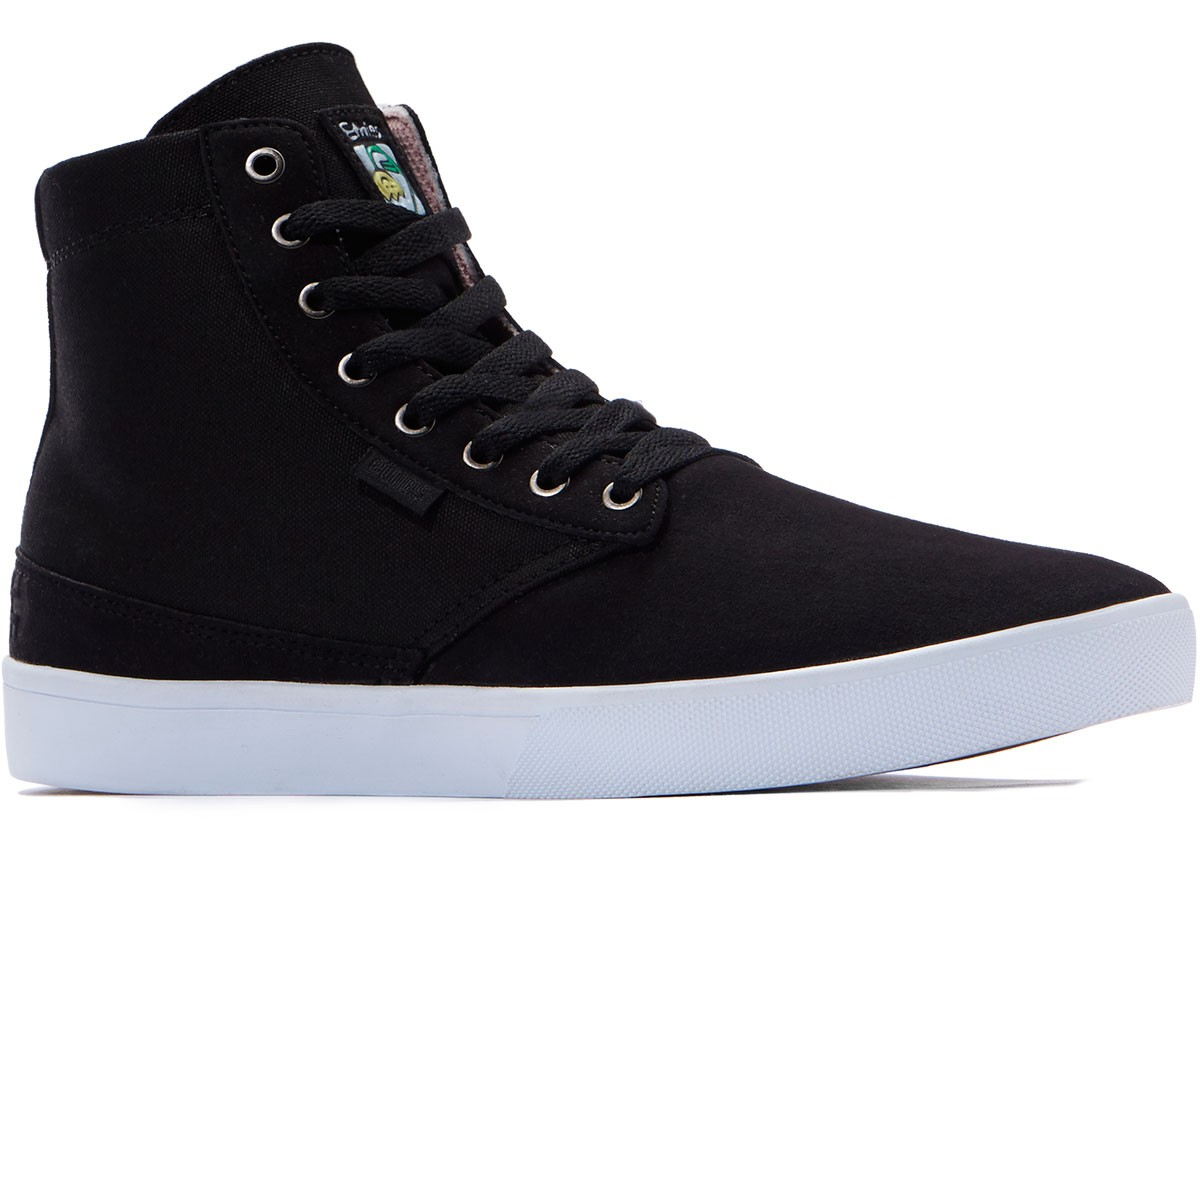 Skate shoes europe shipping